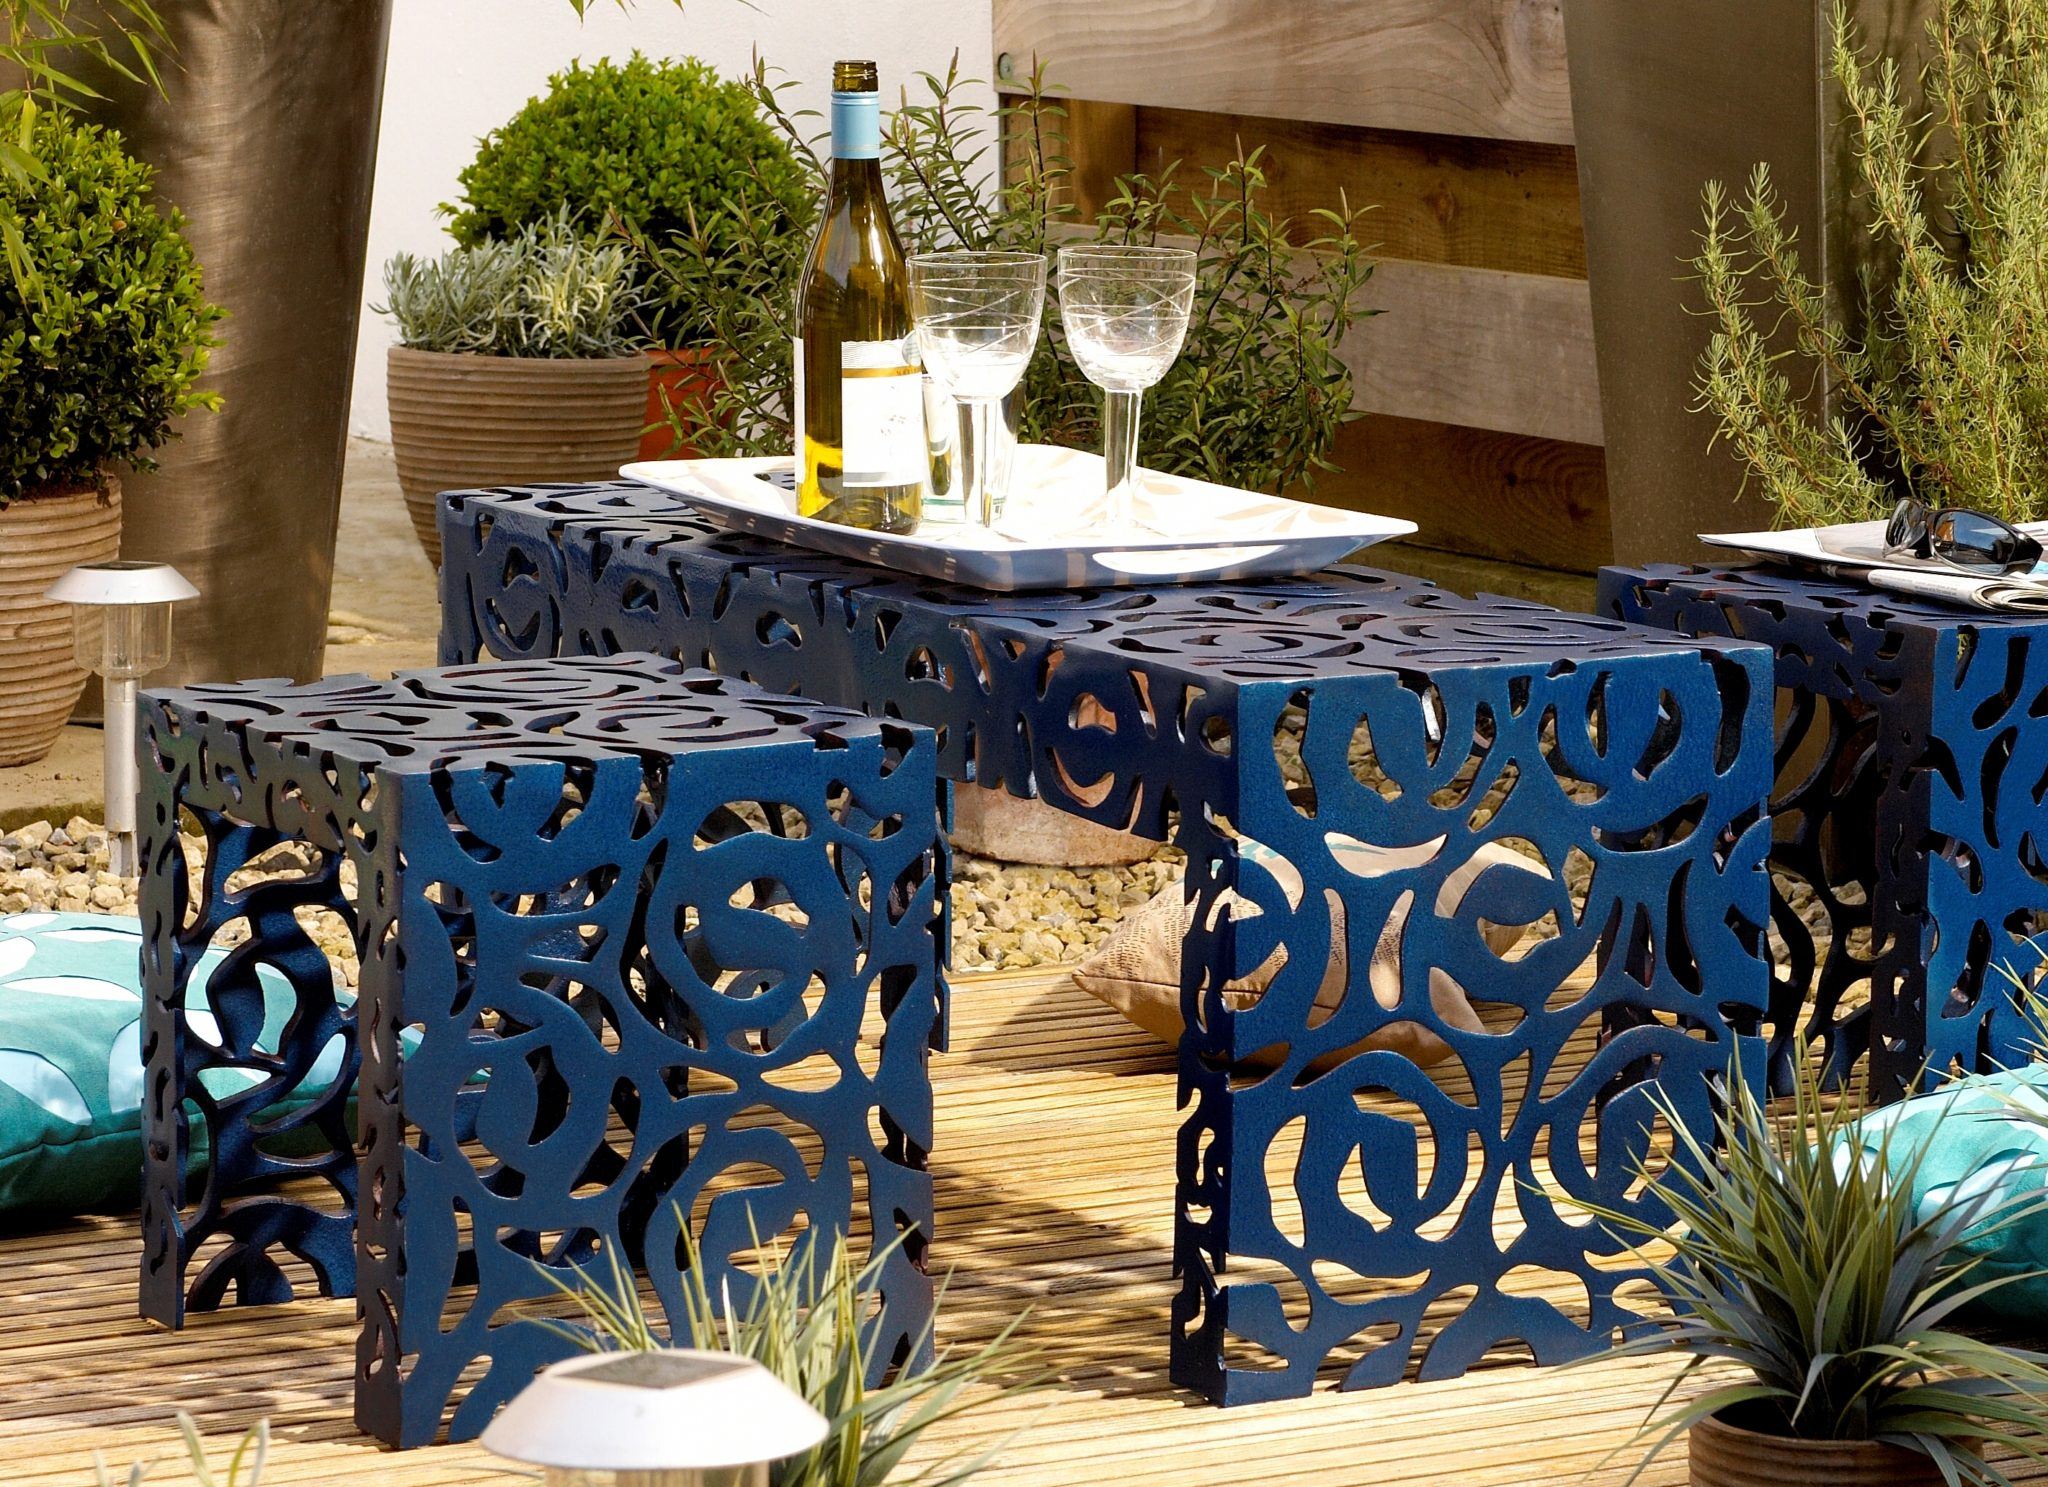 Garden furniture - landscape